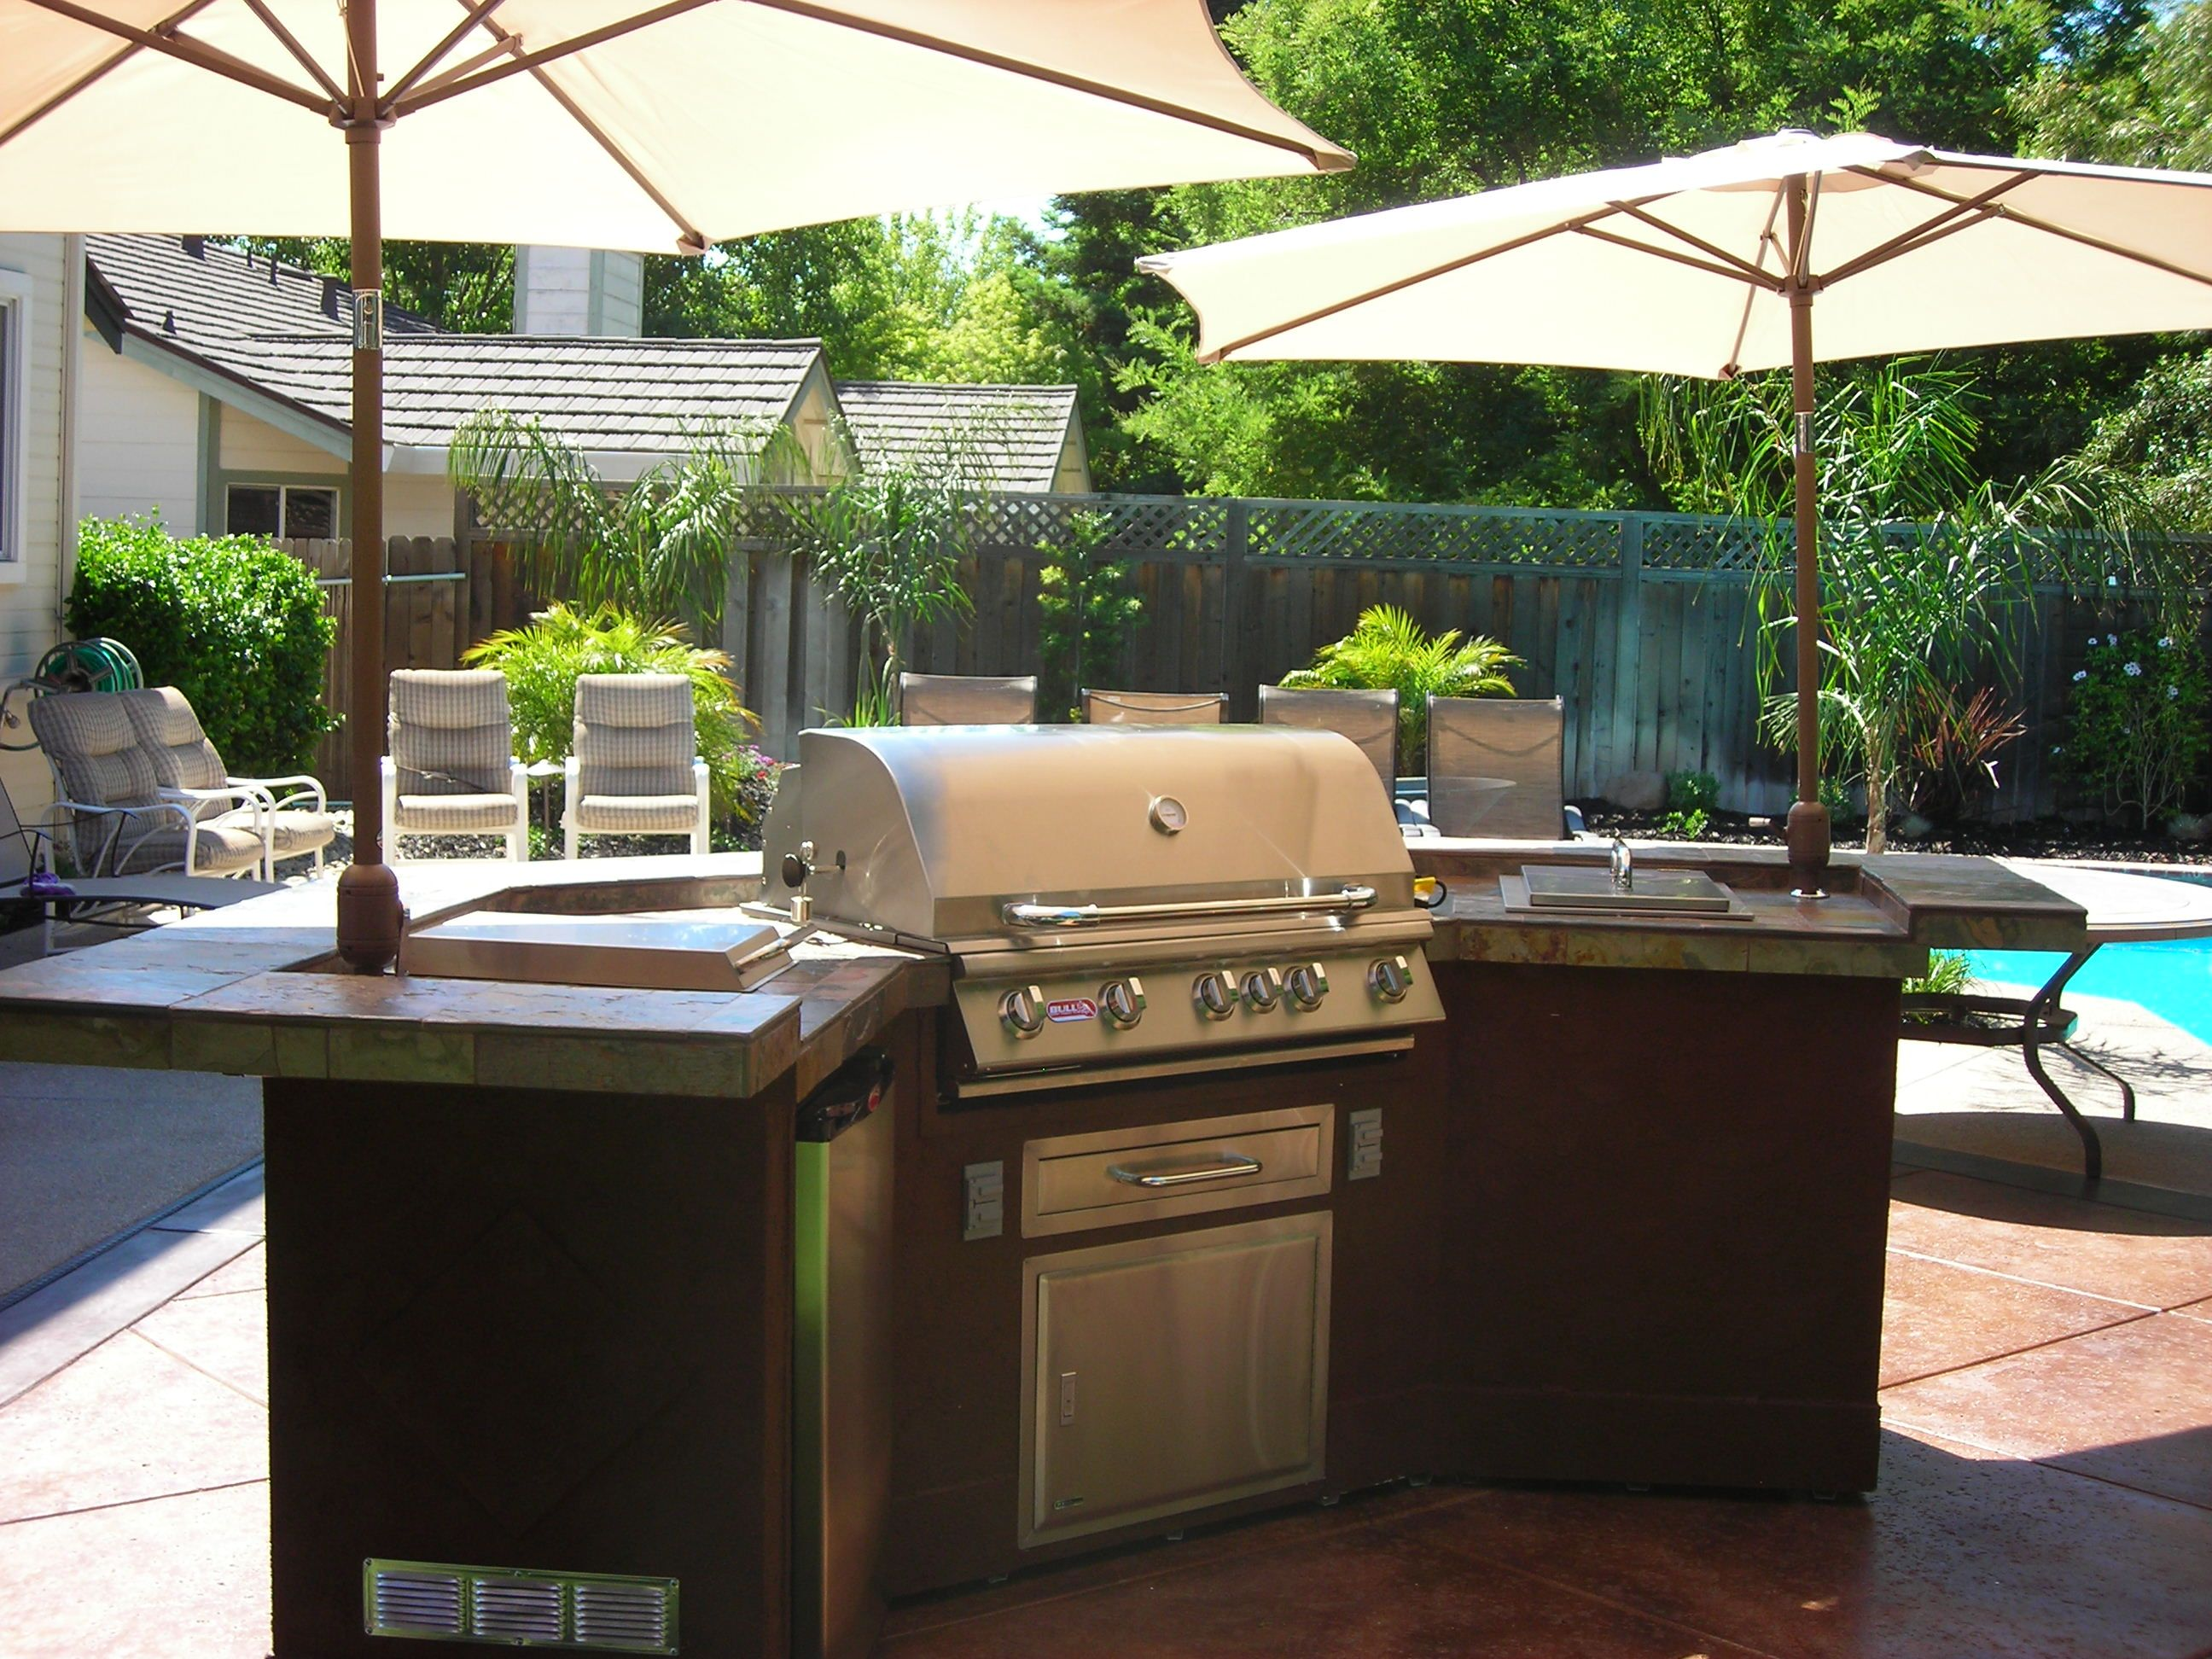 bull outdoor kitchen houzz kitchens bbq island with umbrellas barbecue islands pinterest